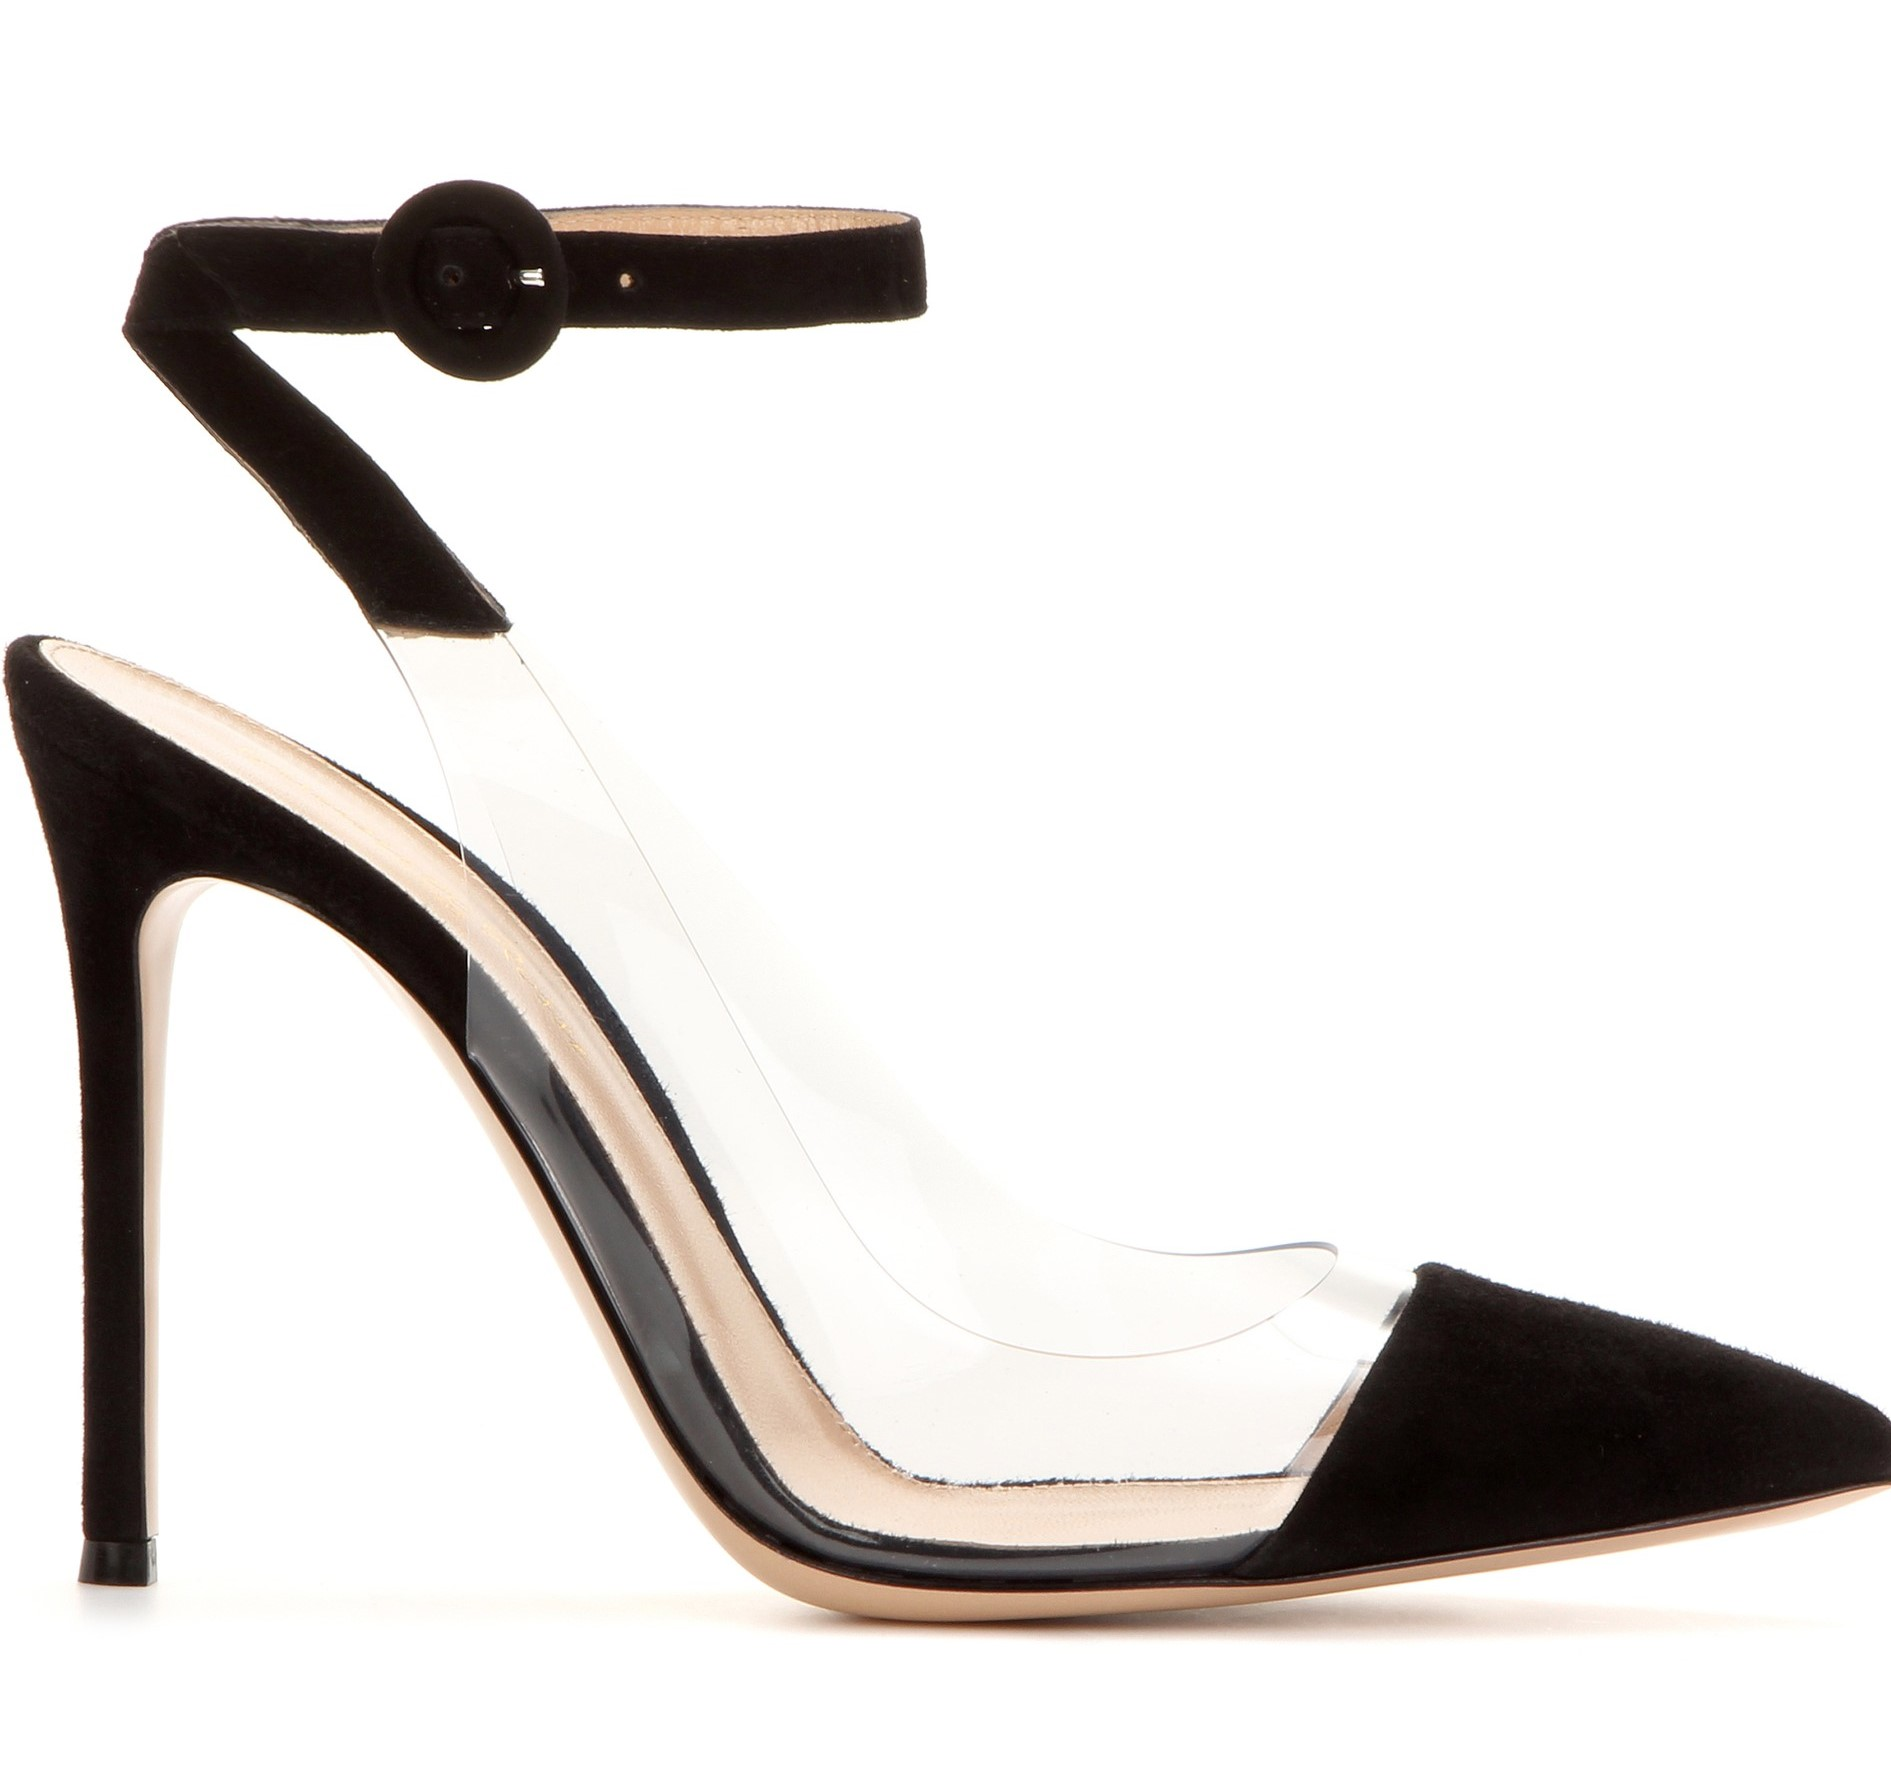 Gianvito Rossi Black Anise Suede Leather Pumps